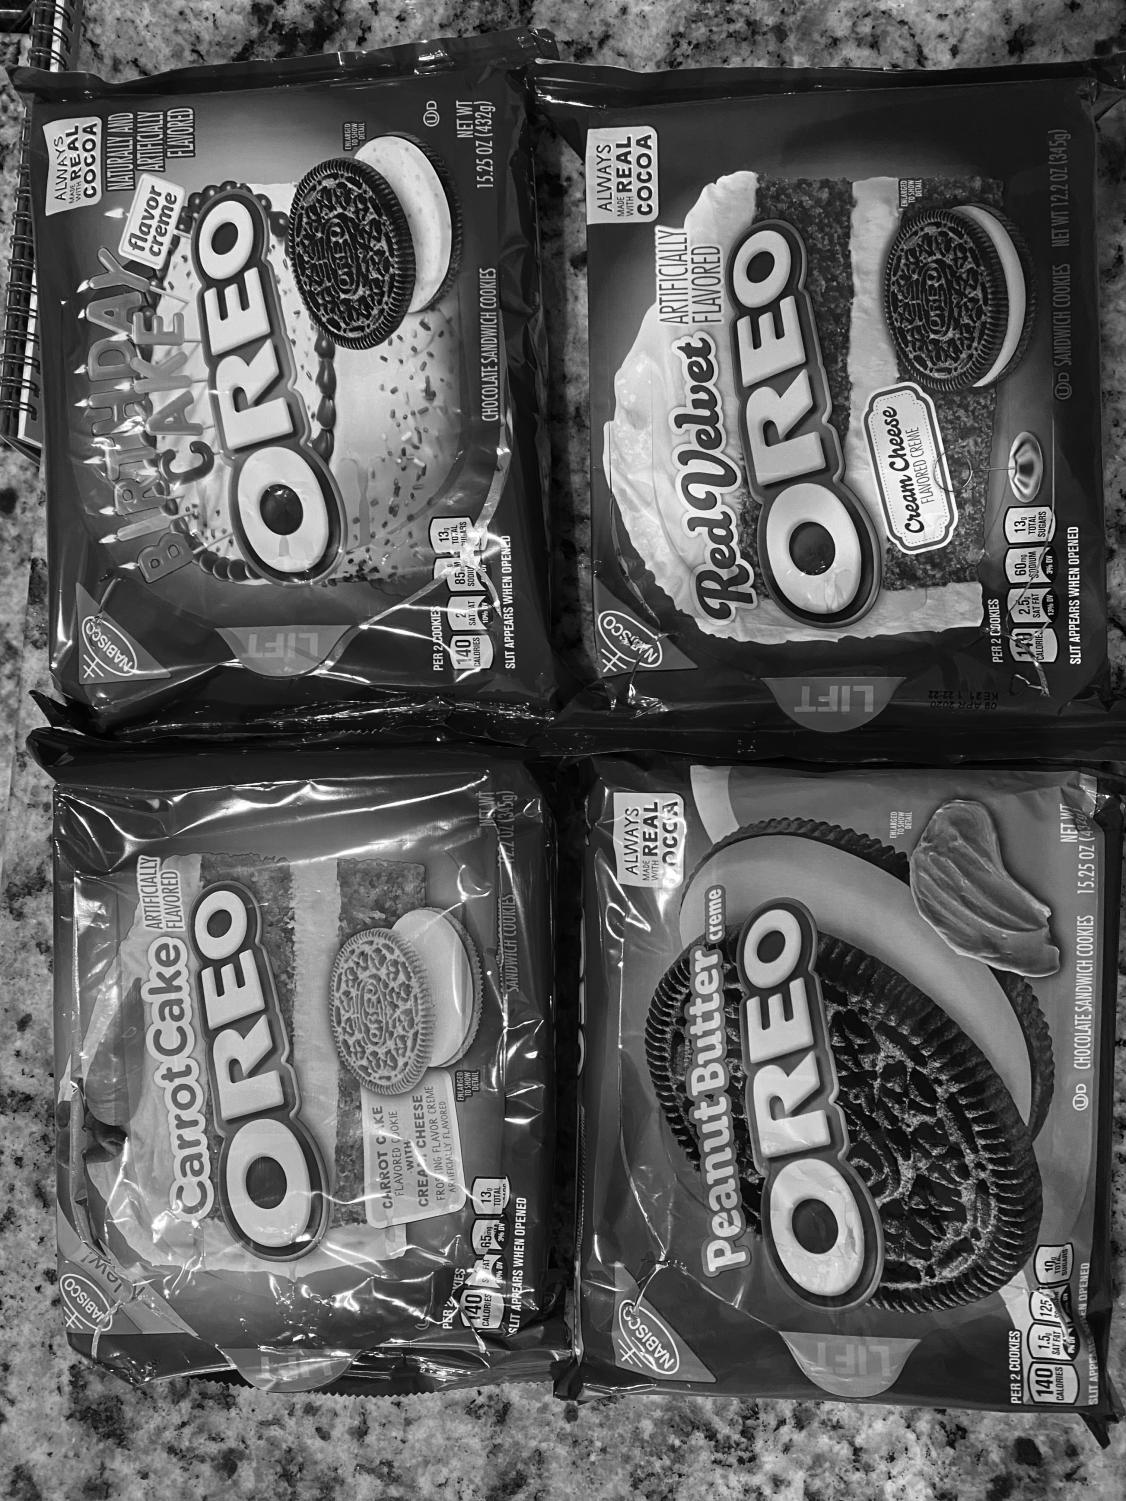 Oreo disappoints fans